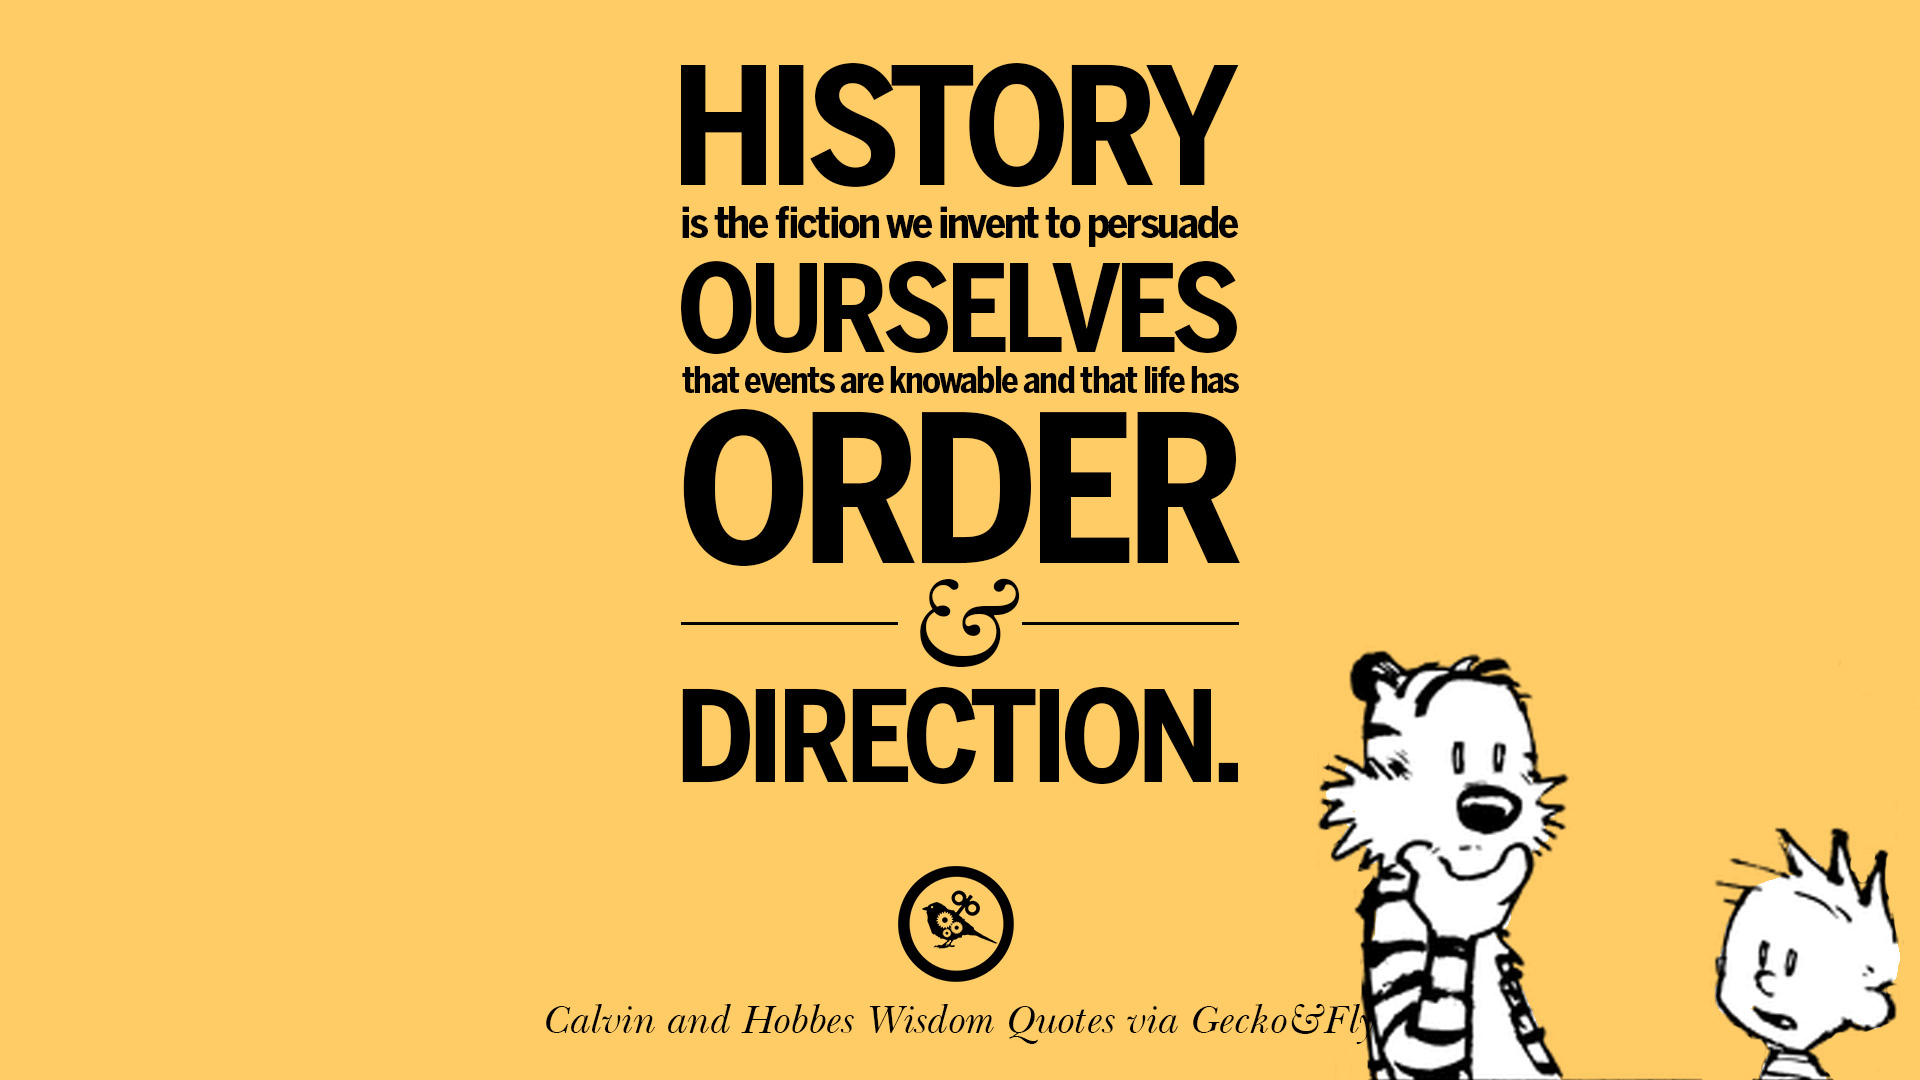 Wise Sayings And Quotes About Life 10 Calvin And Hobbes Words Of Wisdom Quotes And Wise Sayings